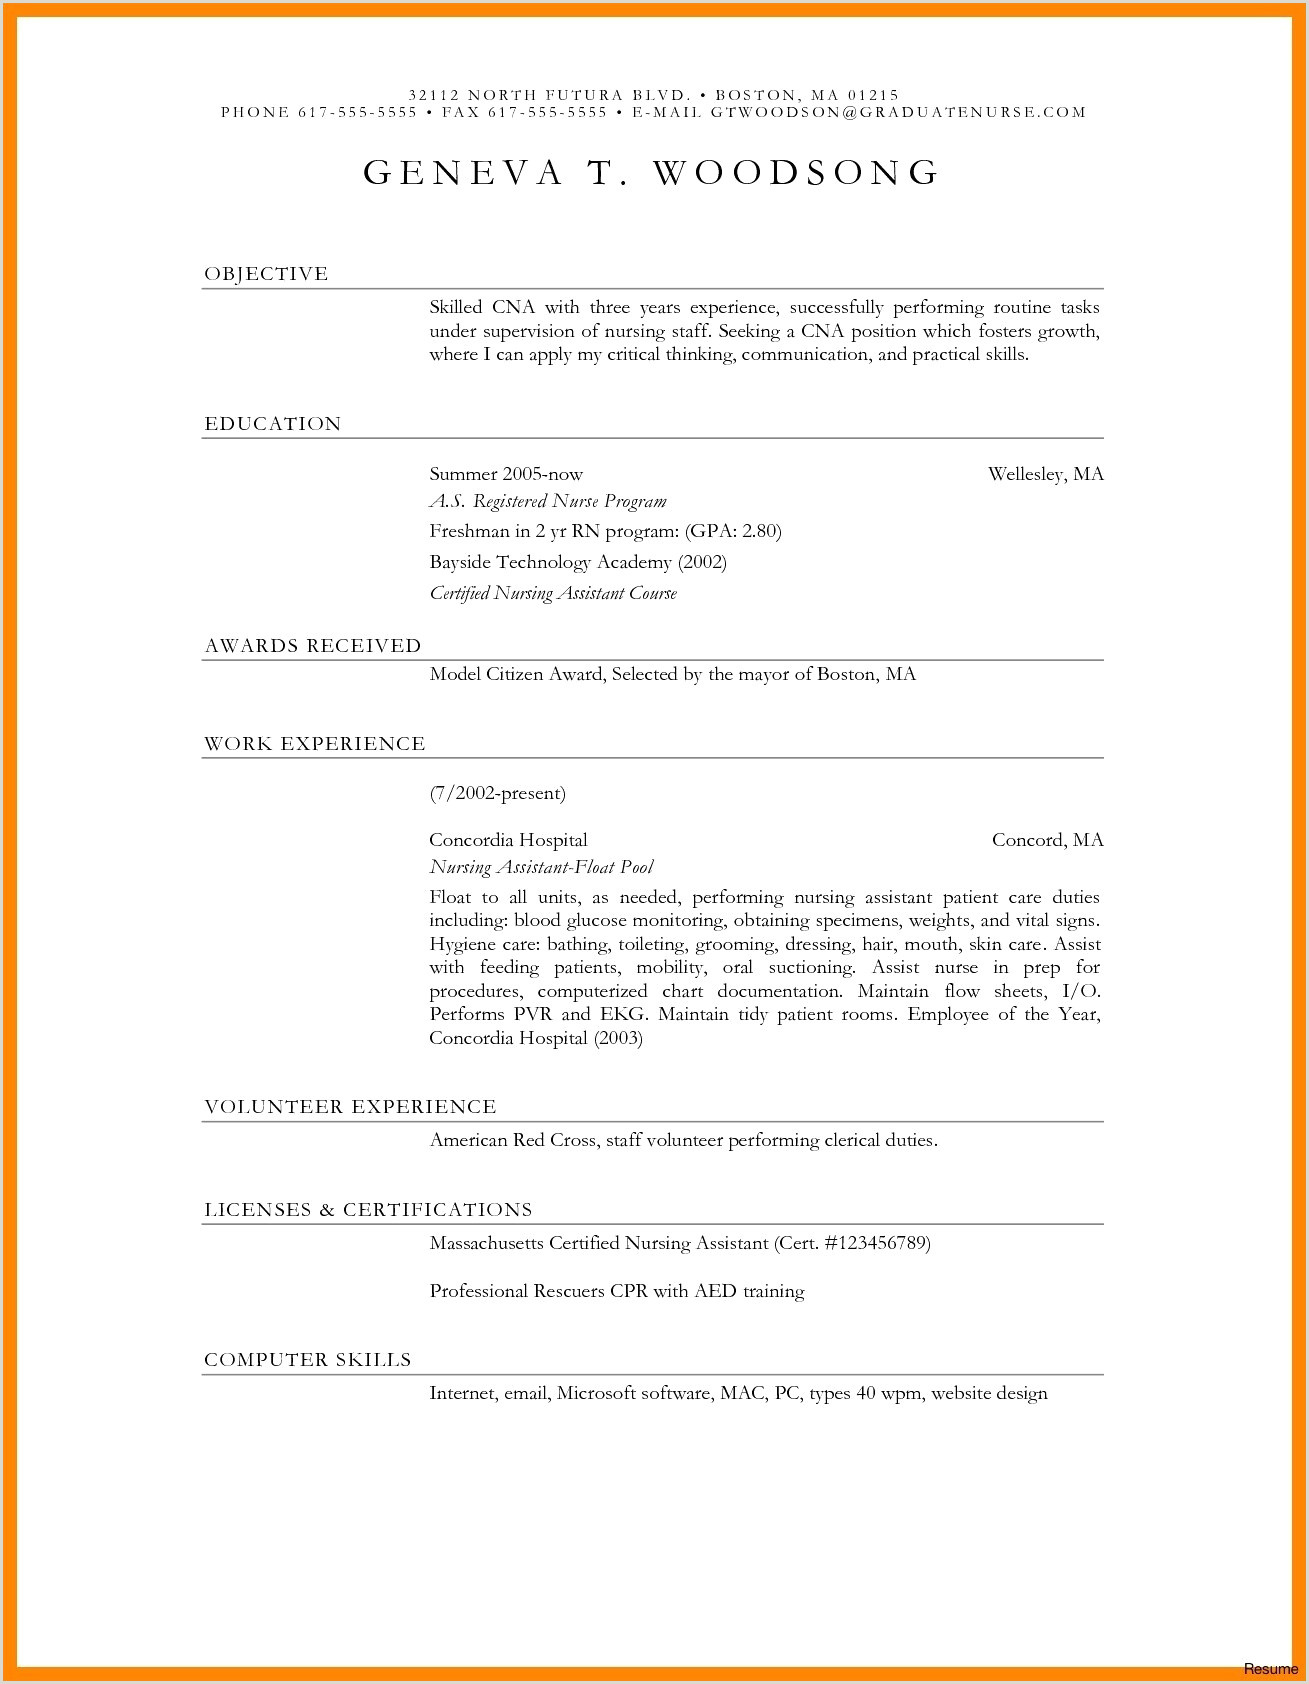 Cv Format For Bank Job In Bangladesh Cv Pro De Base 30 Examples Cv Ekla Kerlann